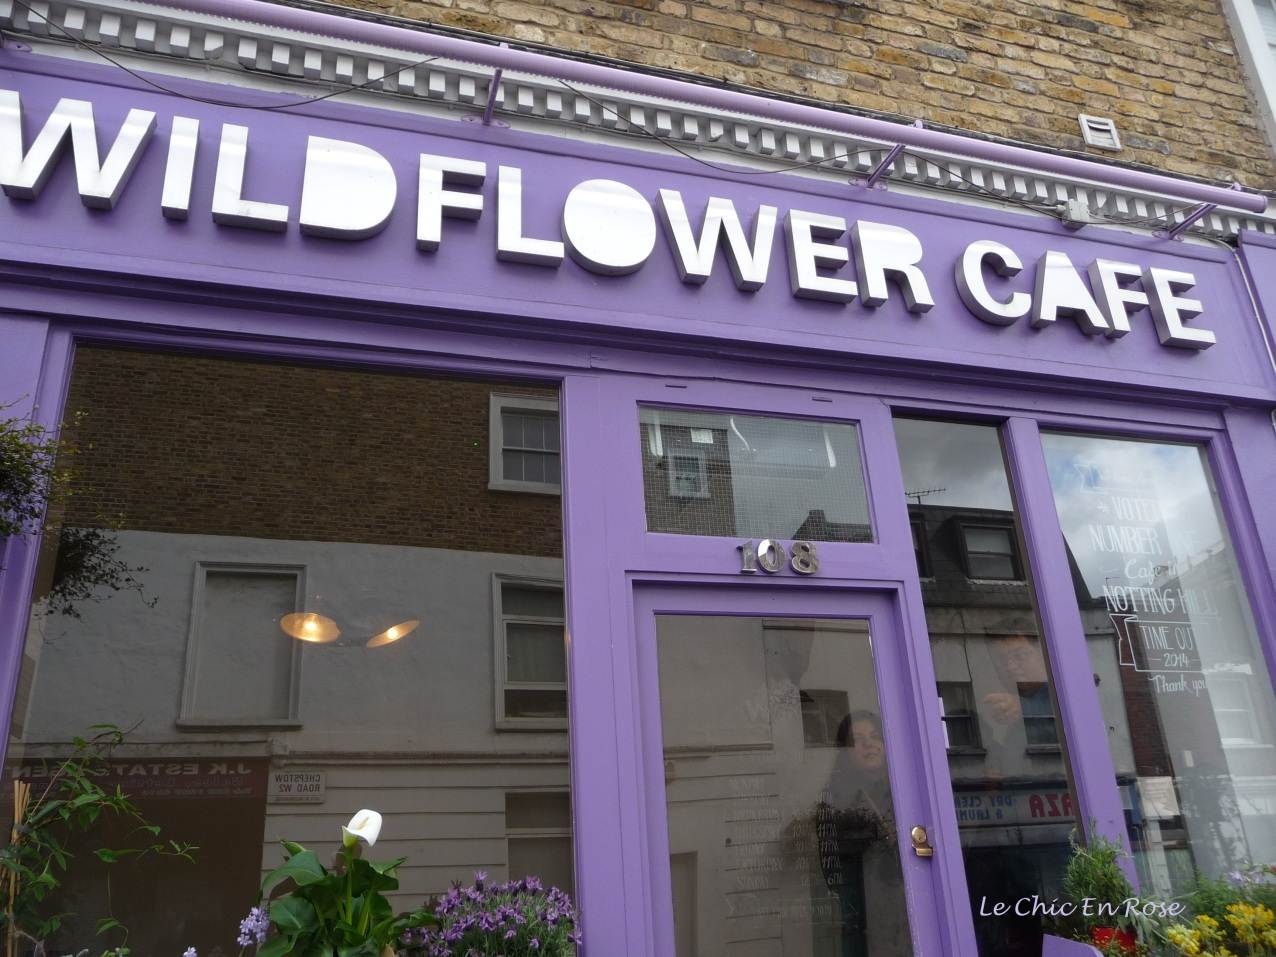 The Wildflower Cafe Notting Hill